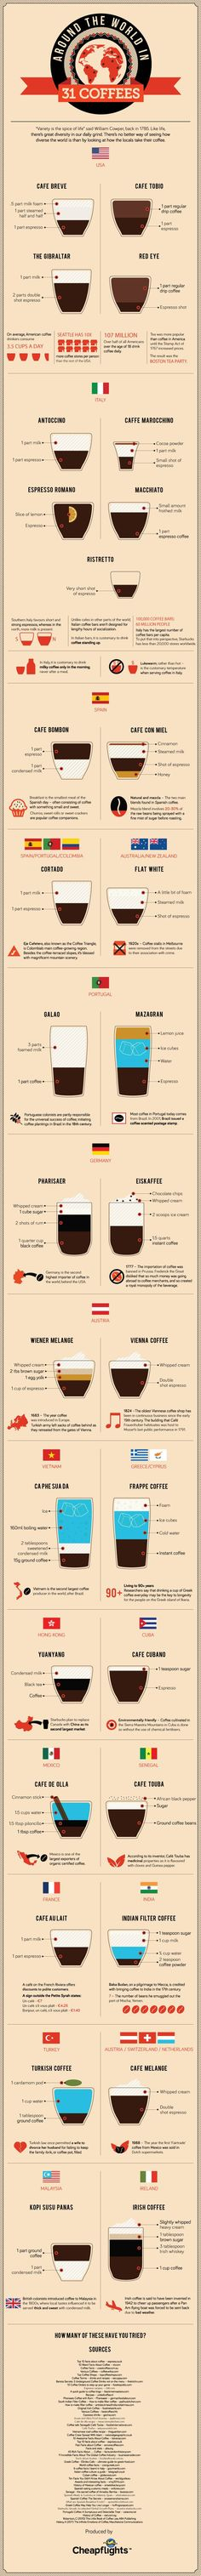 Don't Make A Fool Of Yourself: Brush Up On How To Order Coffee In 26 Different Languages - Omgfacts - The World's #1 Fact Source